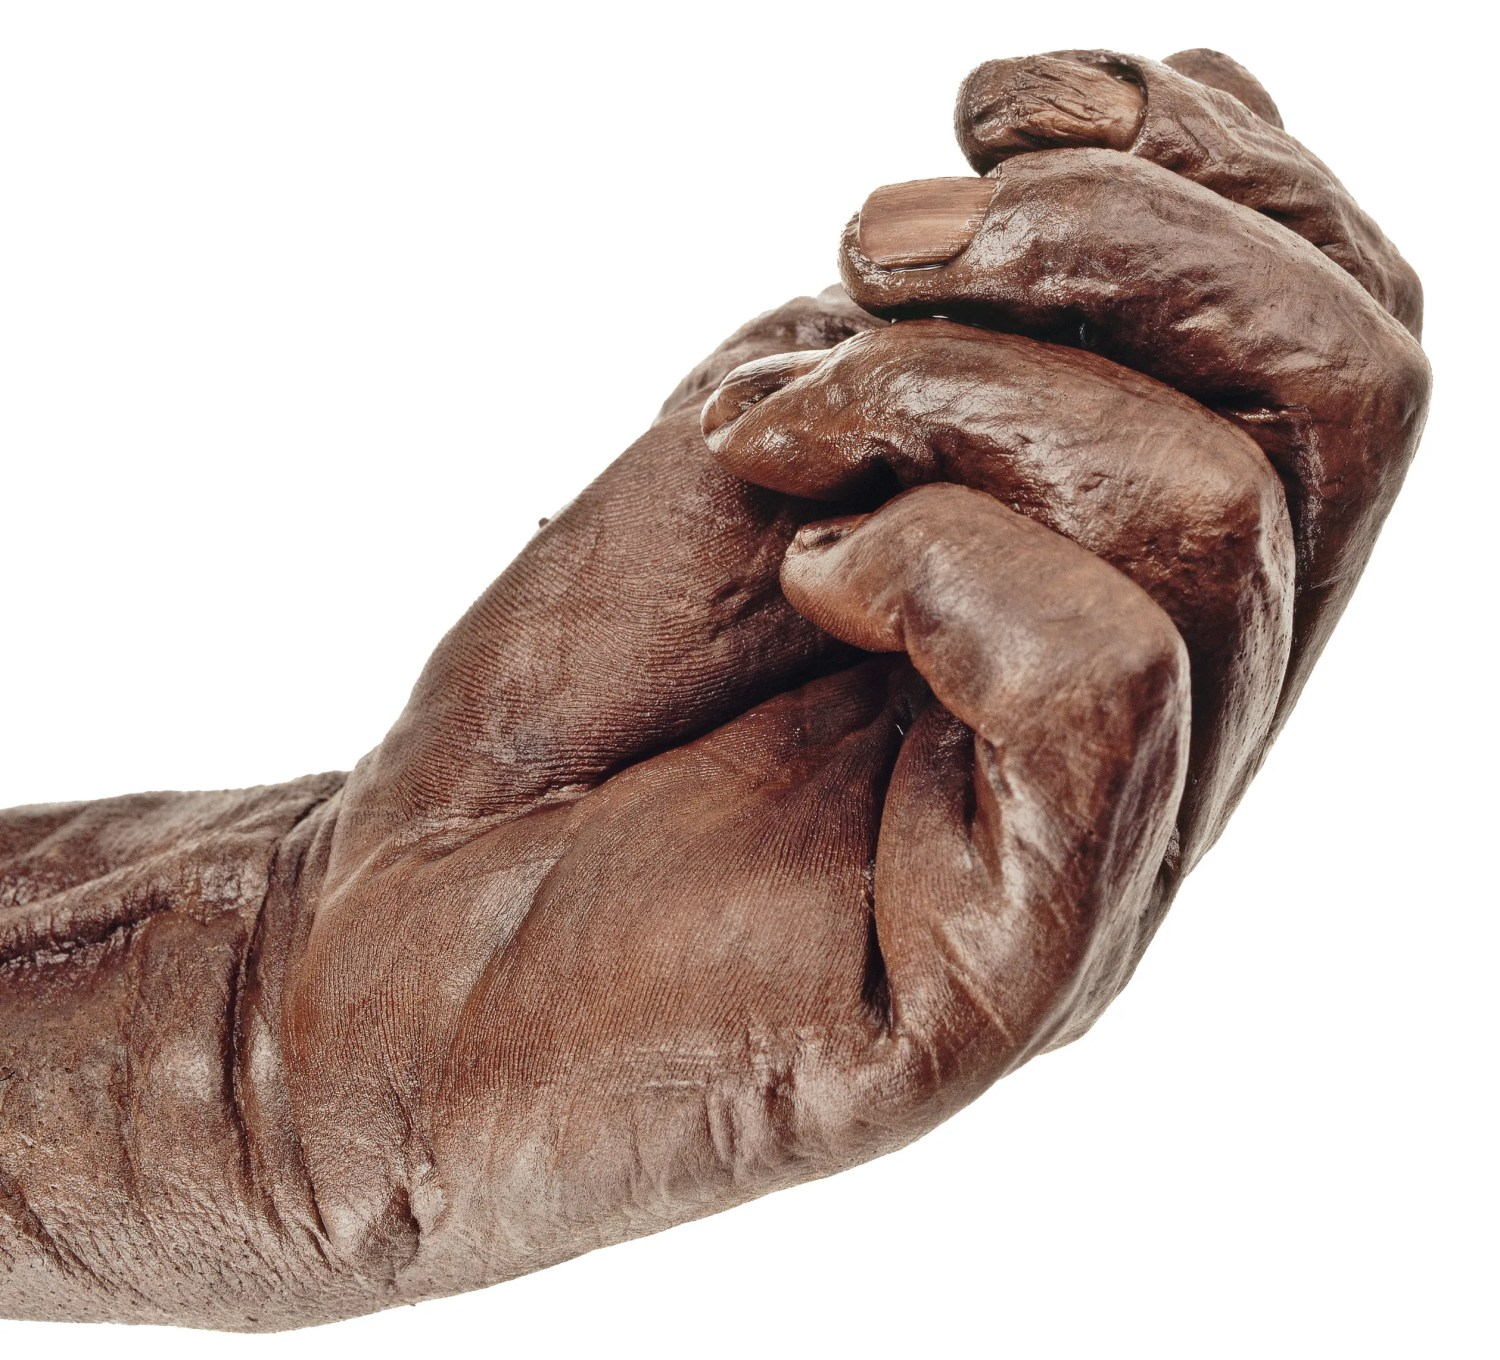 OPPOSITE The peat-mummified hand of Old Croghan Man, from Co. Offaly, preserves intimate details including the texture of his skin and the shape of his fingernails. Bog bodies like this are particularly resonant archaeological discoveries, being so recognisably human.